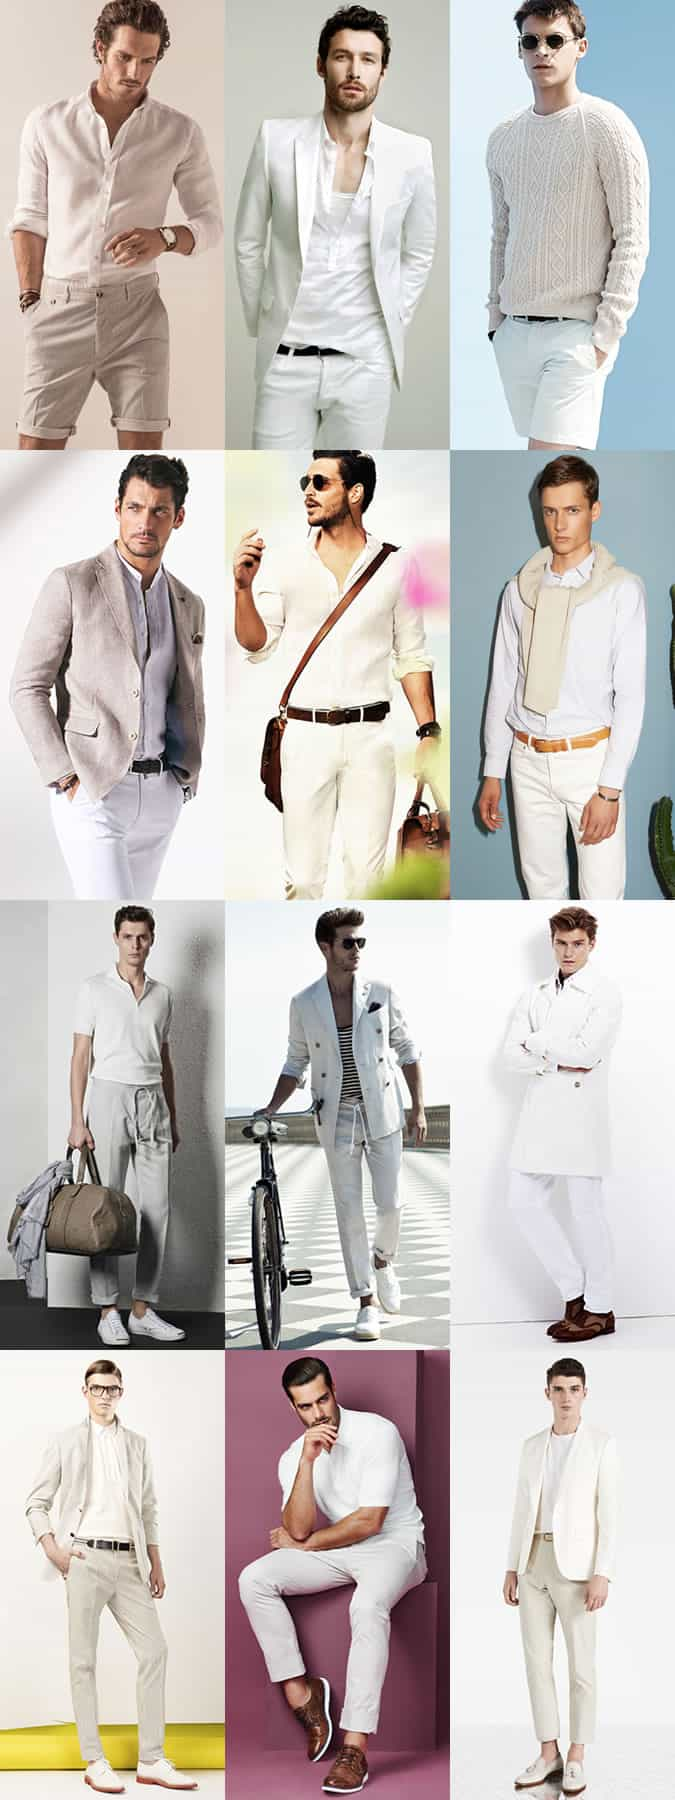 Dress code for smart casual smart casual dress code for men pictures - Men S All White Smart Casual Outfit Inspiration Lookbook